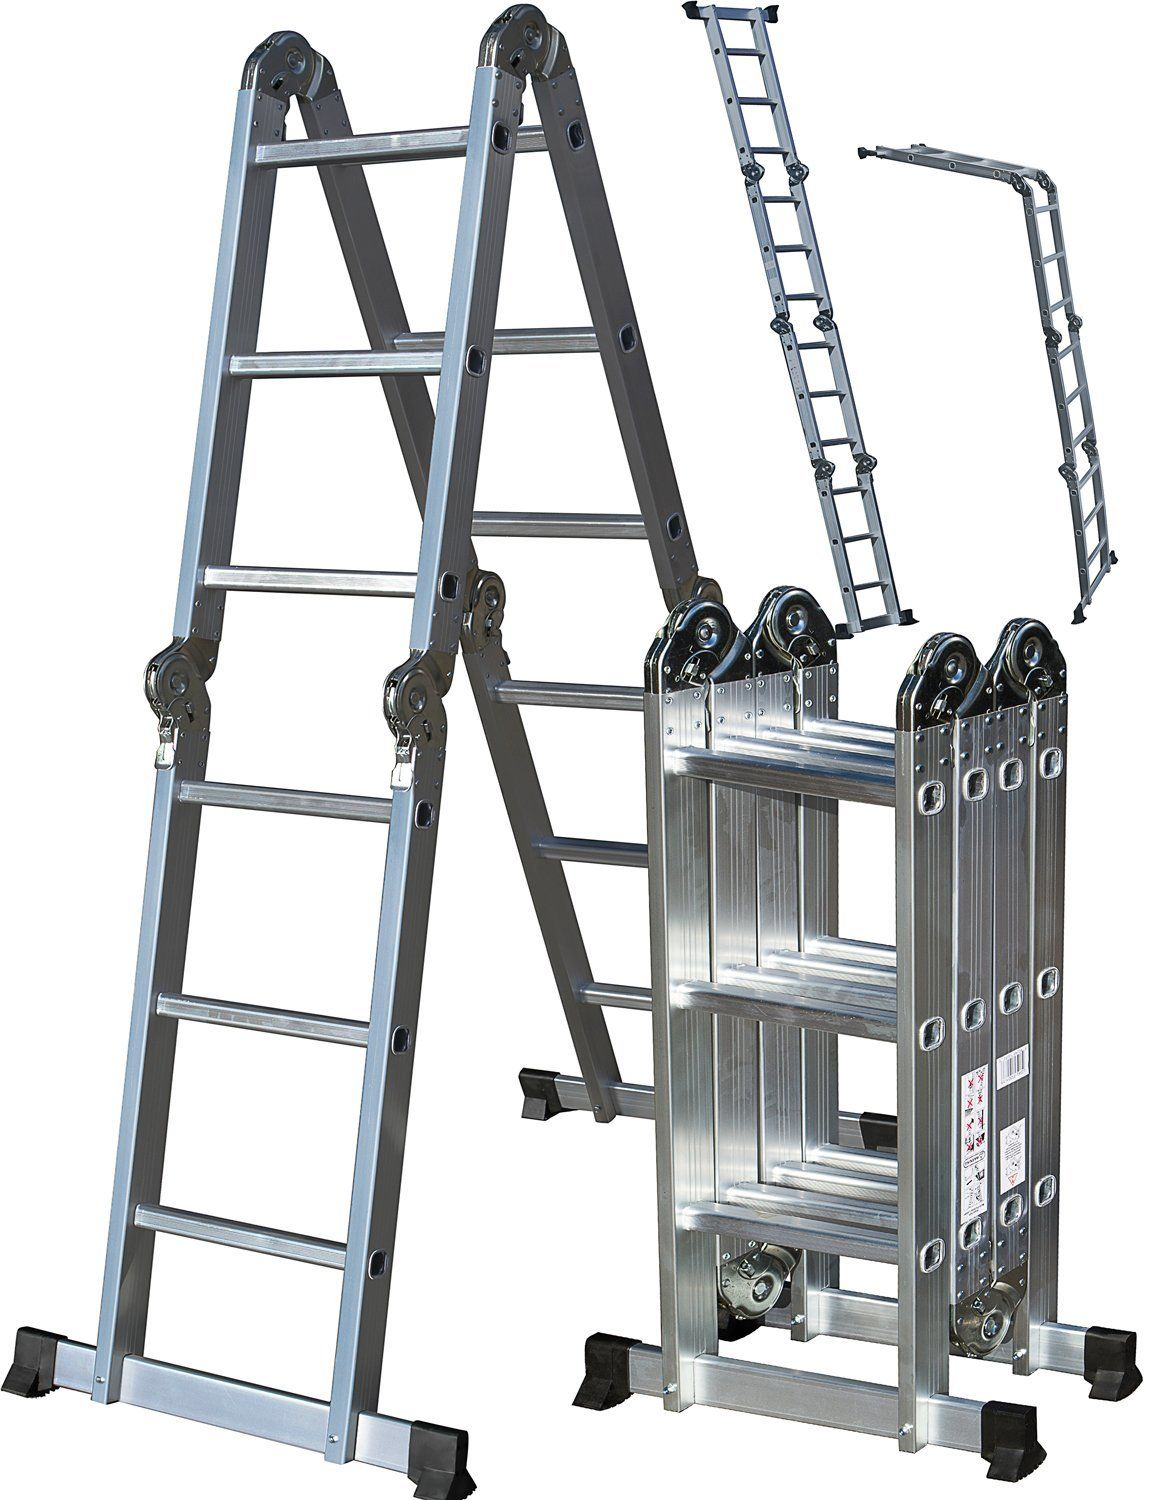 Best scaffolding systems for home use 2020 multi purpose